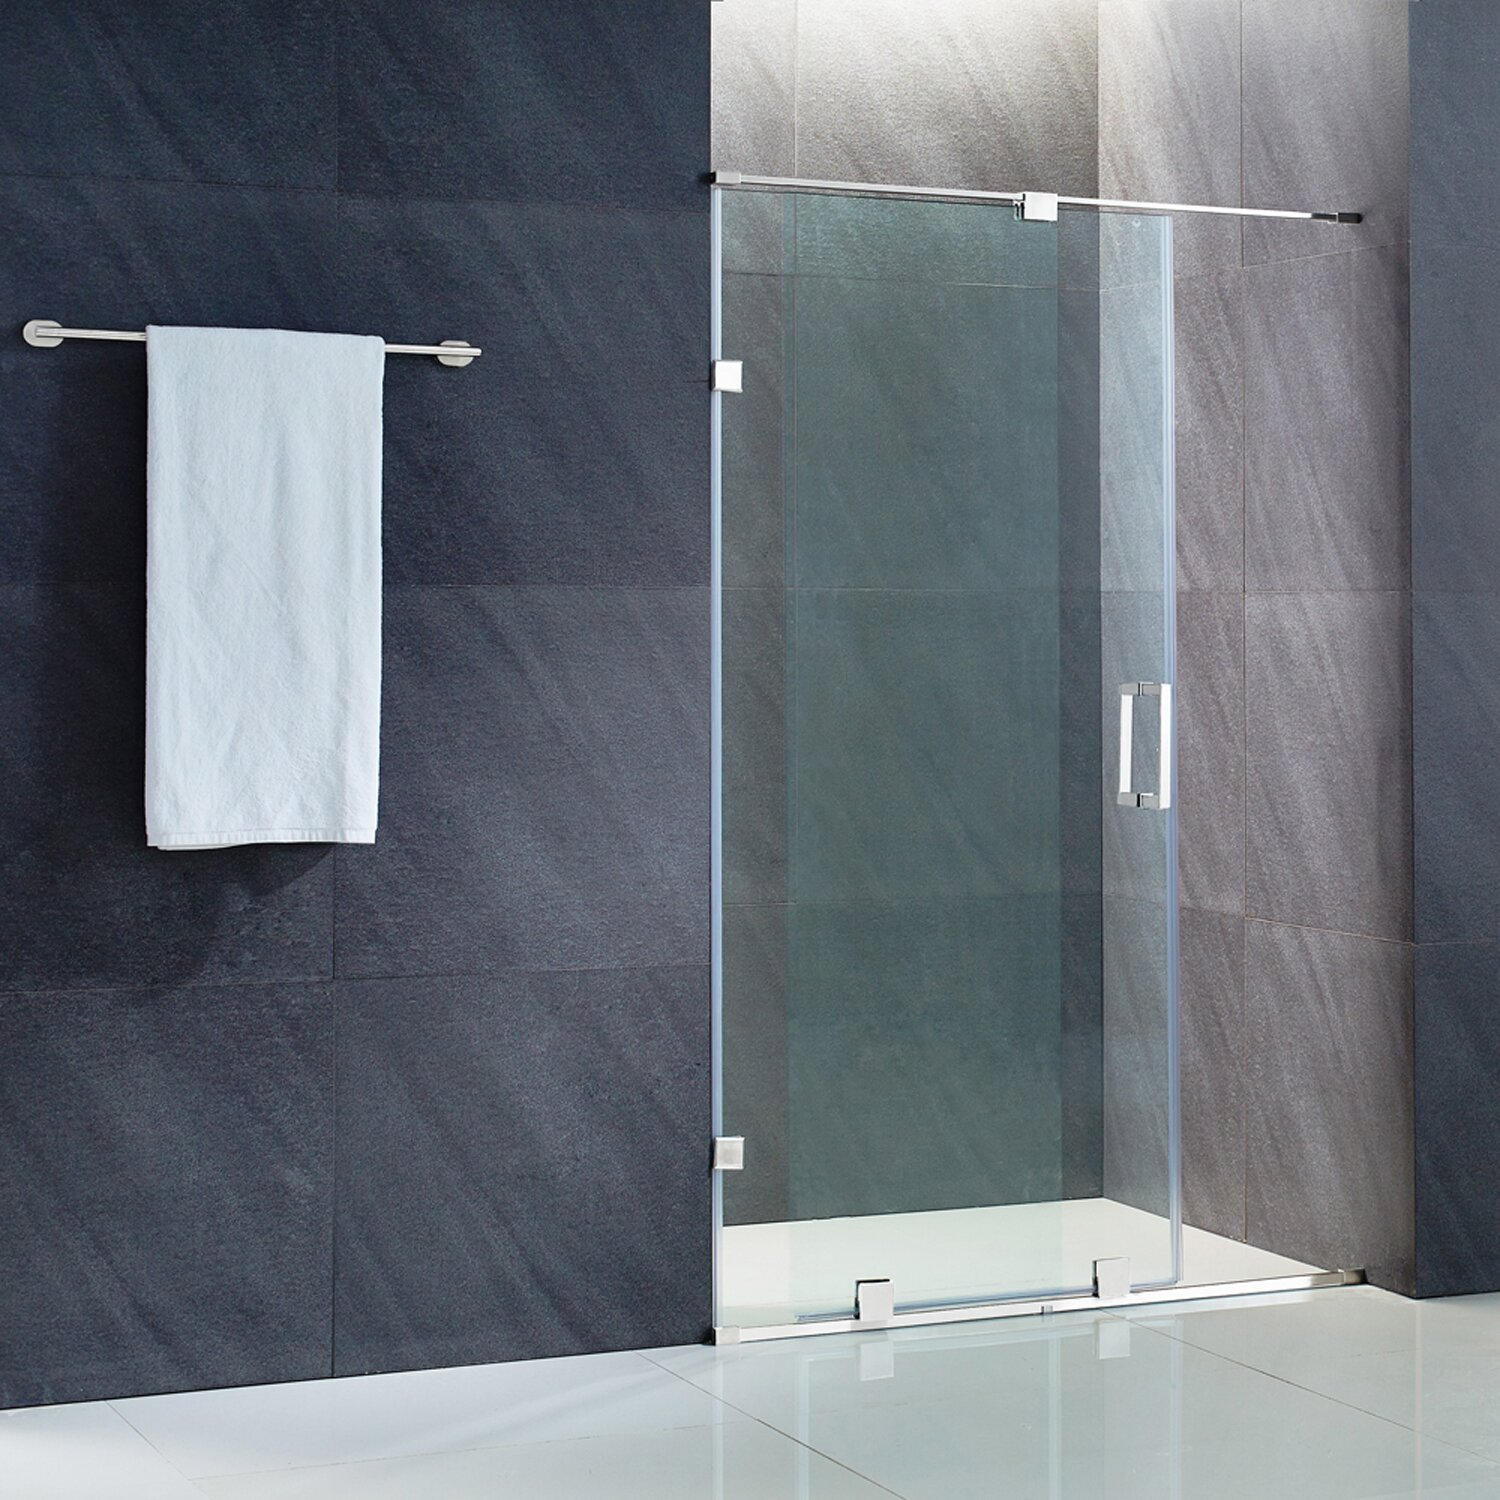 Luxury Aker Showers Ensign - Bathtub Design Ideas - klotsnet.com